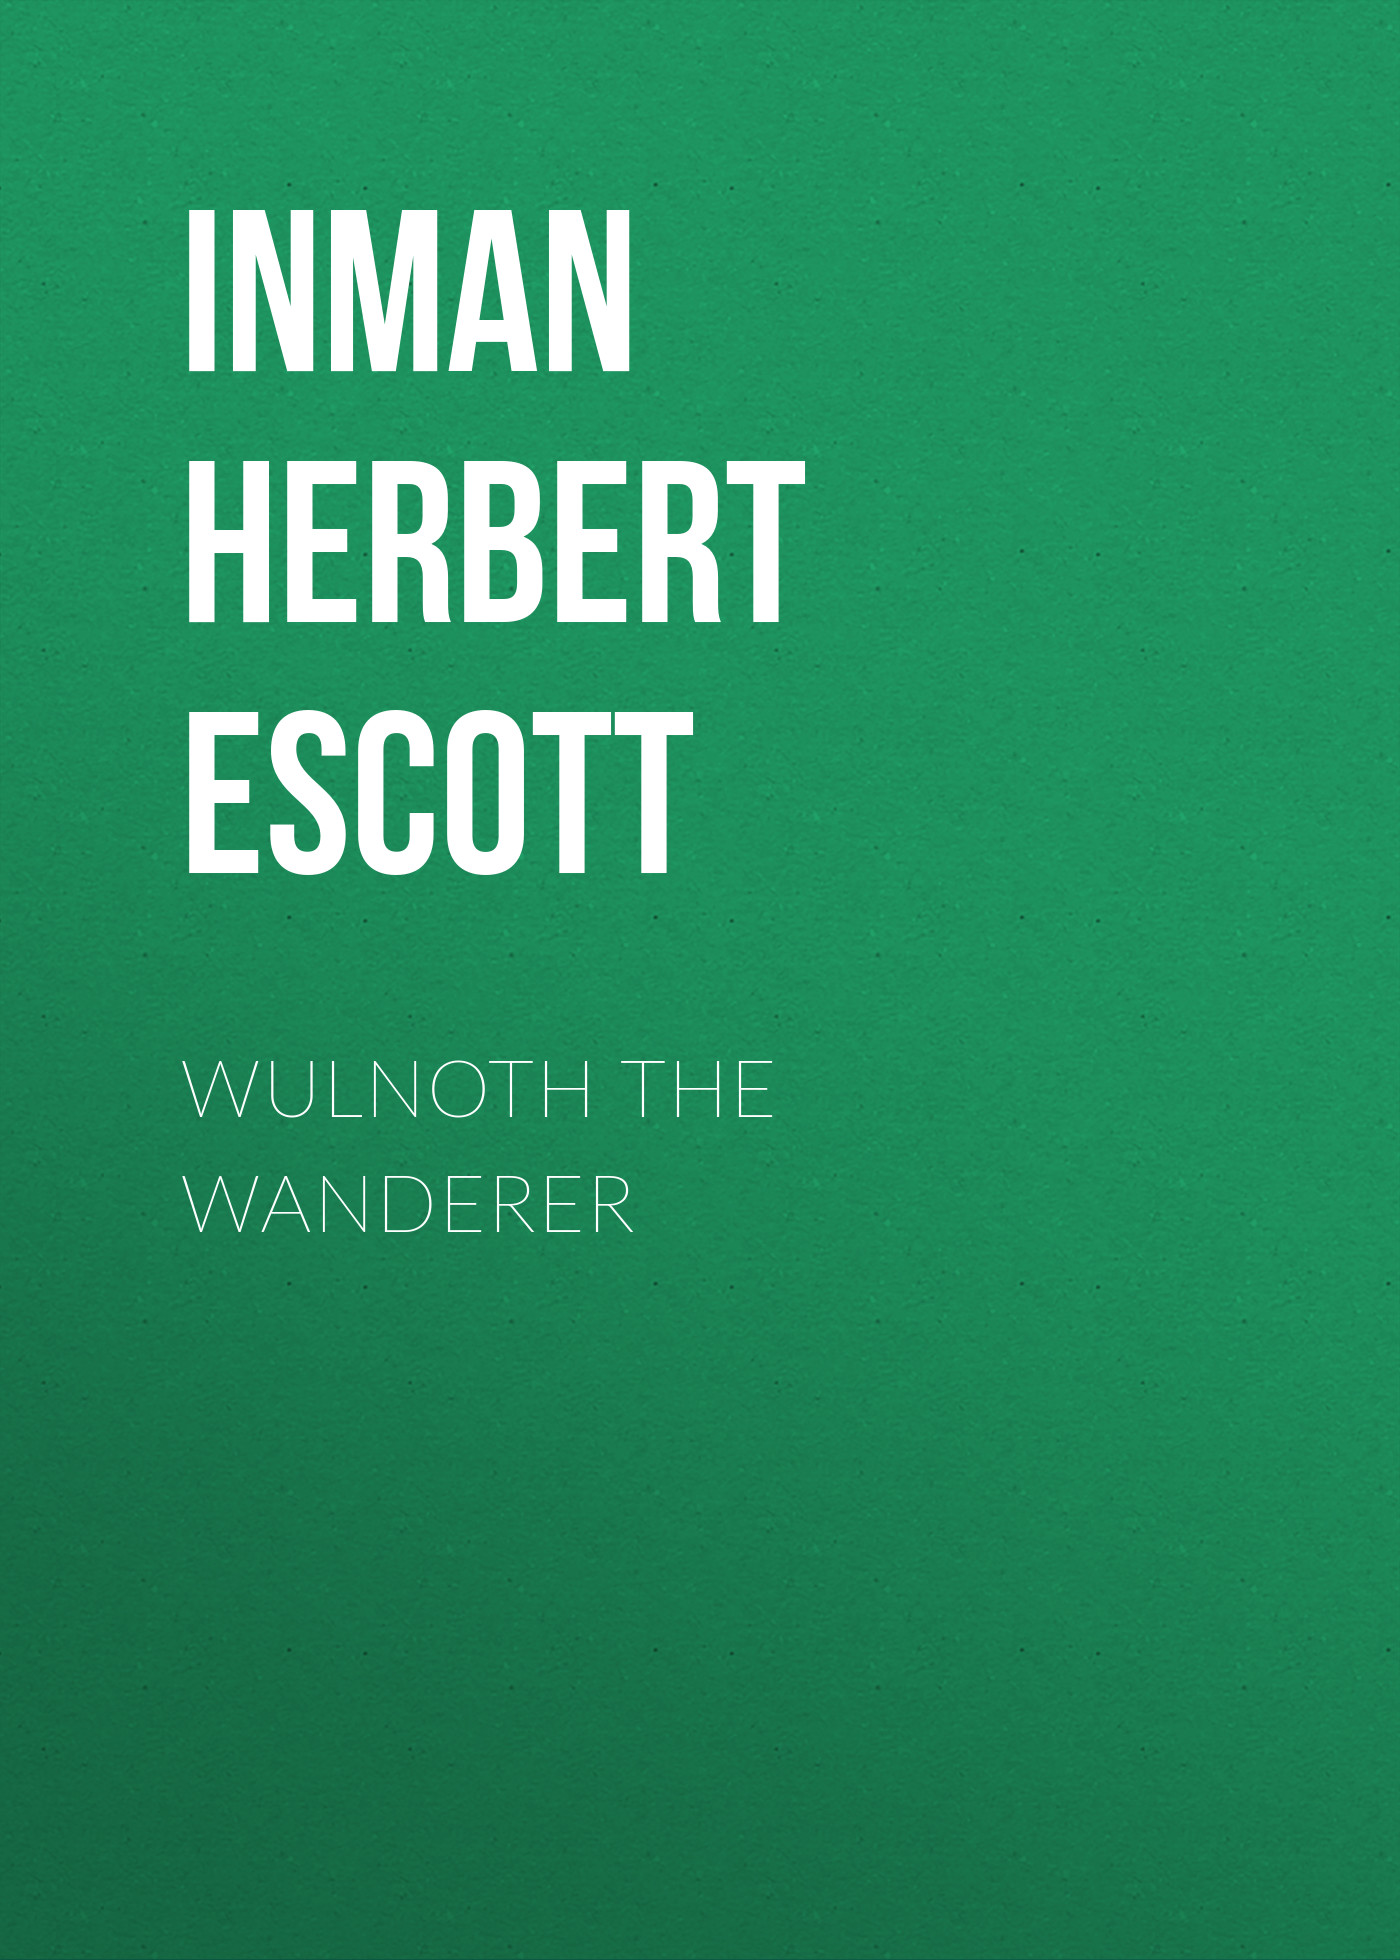 Inman Herbert Escott Wulnoth the Wanderer